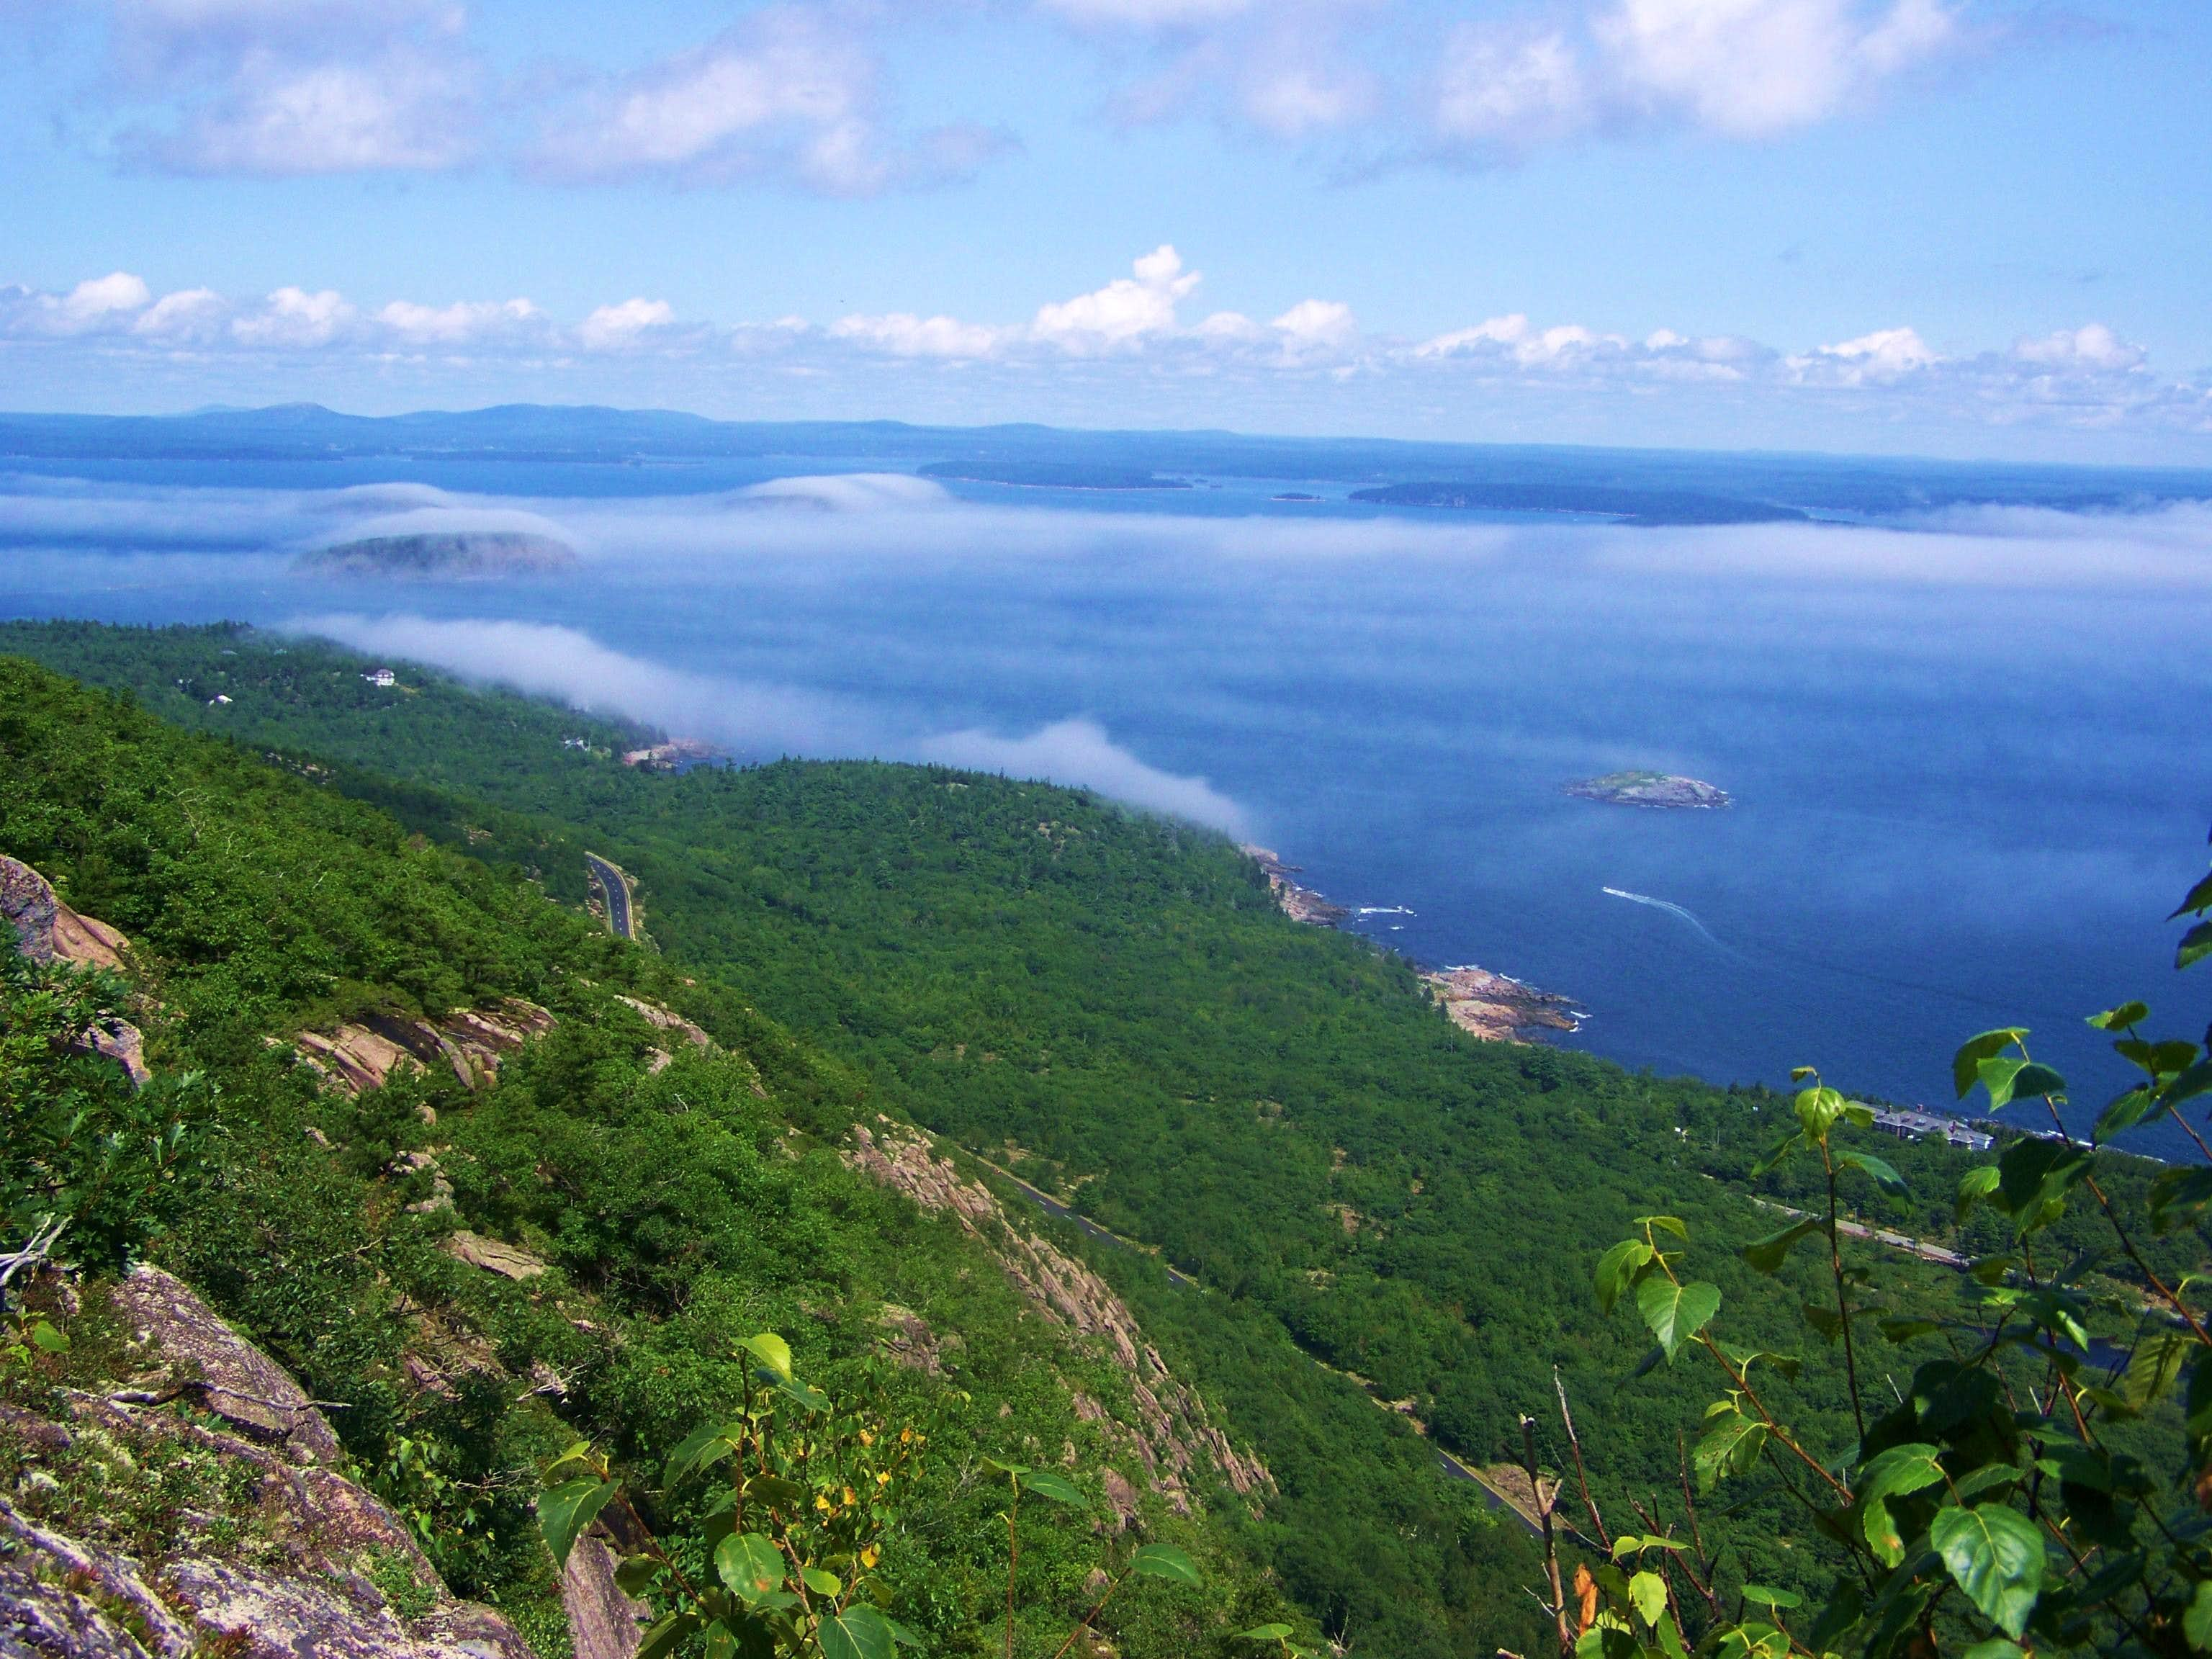 Champlain Mtn, via the Precipice Trail